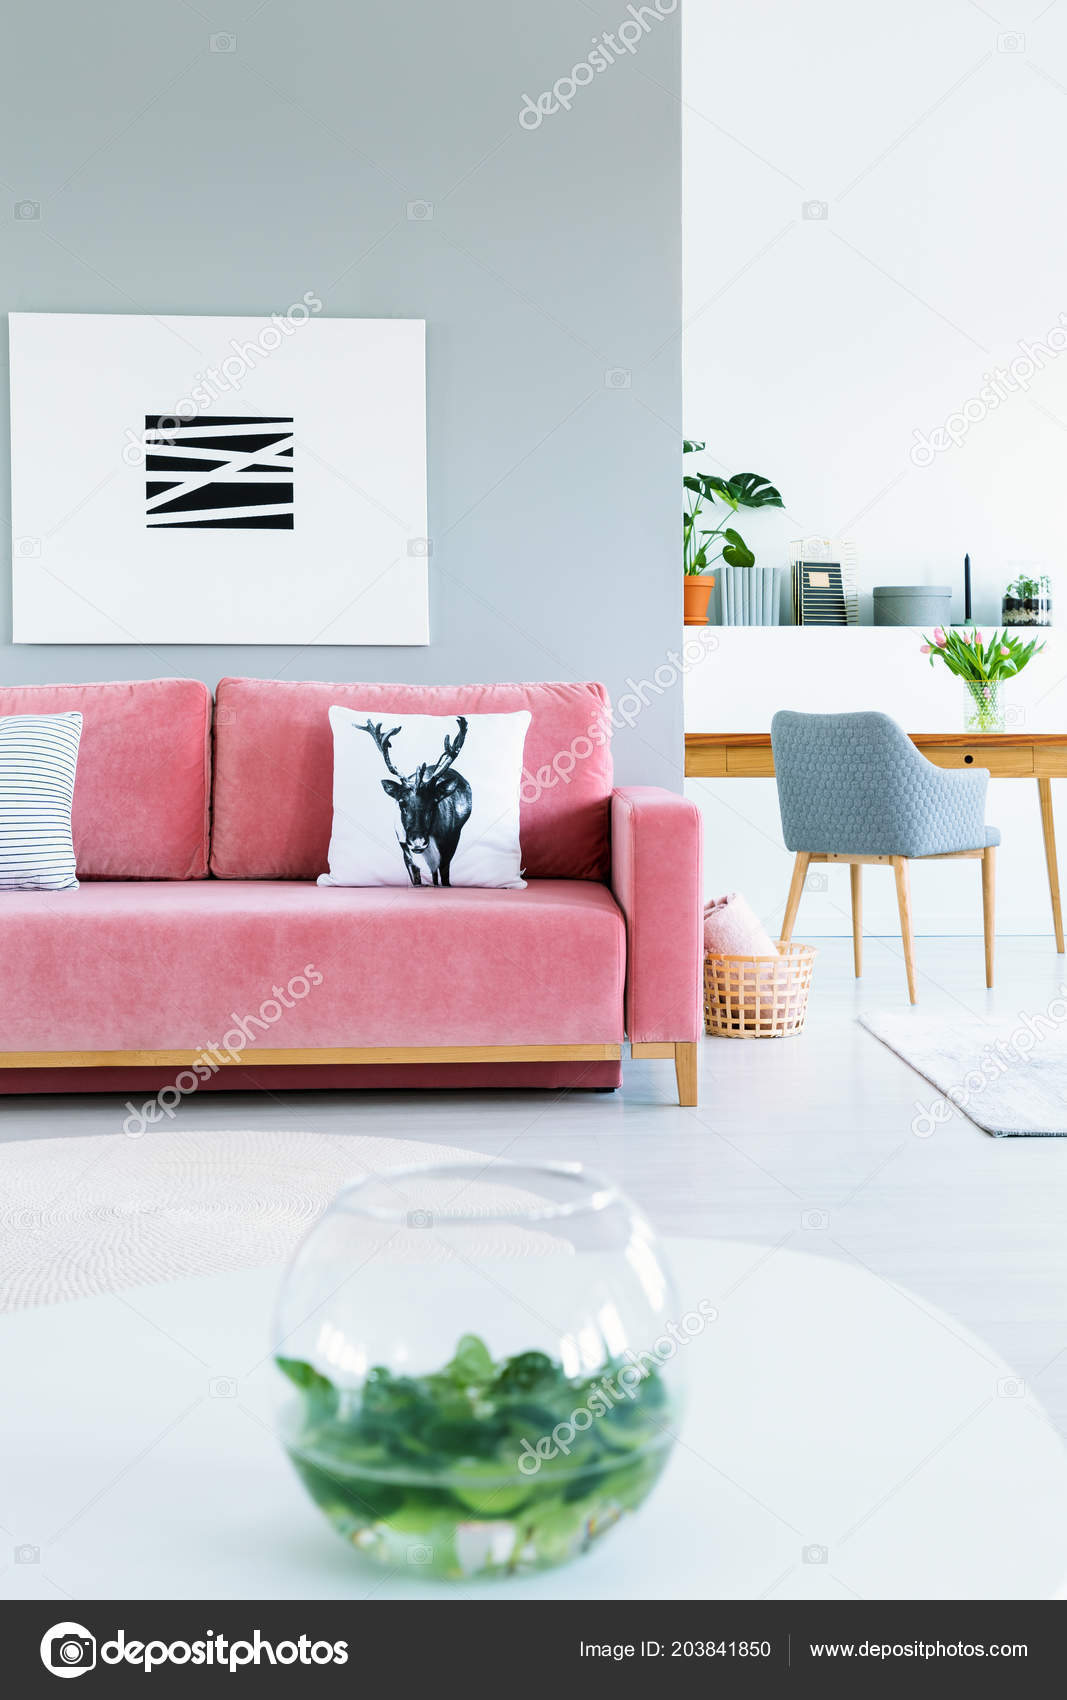 Deer Pillow On A Pink Sofa In Feminine Home Interior With A Gray Chair At A  Wooden Desk In The Background. Real Photo U2014 Photo By Photographee.eu